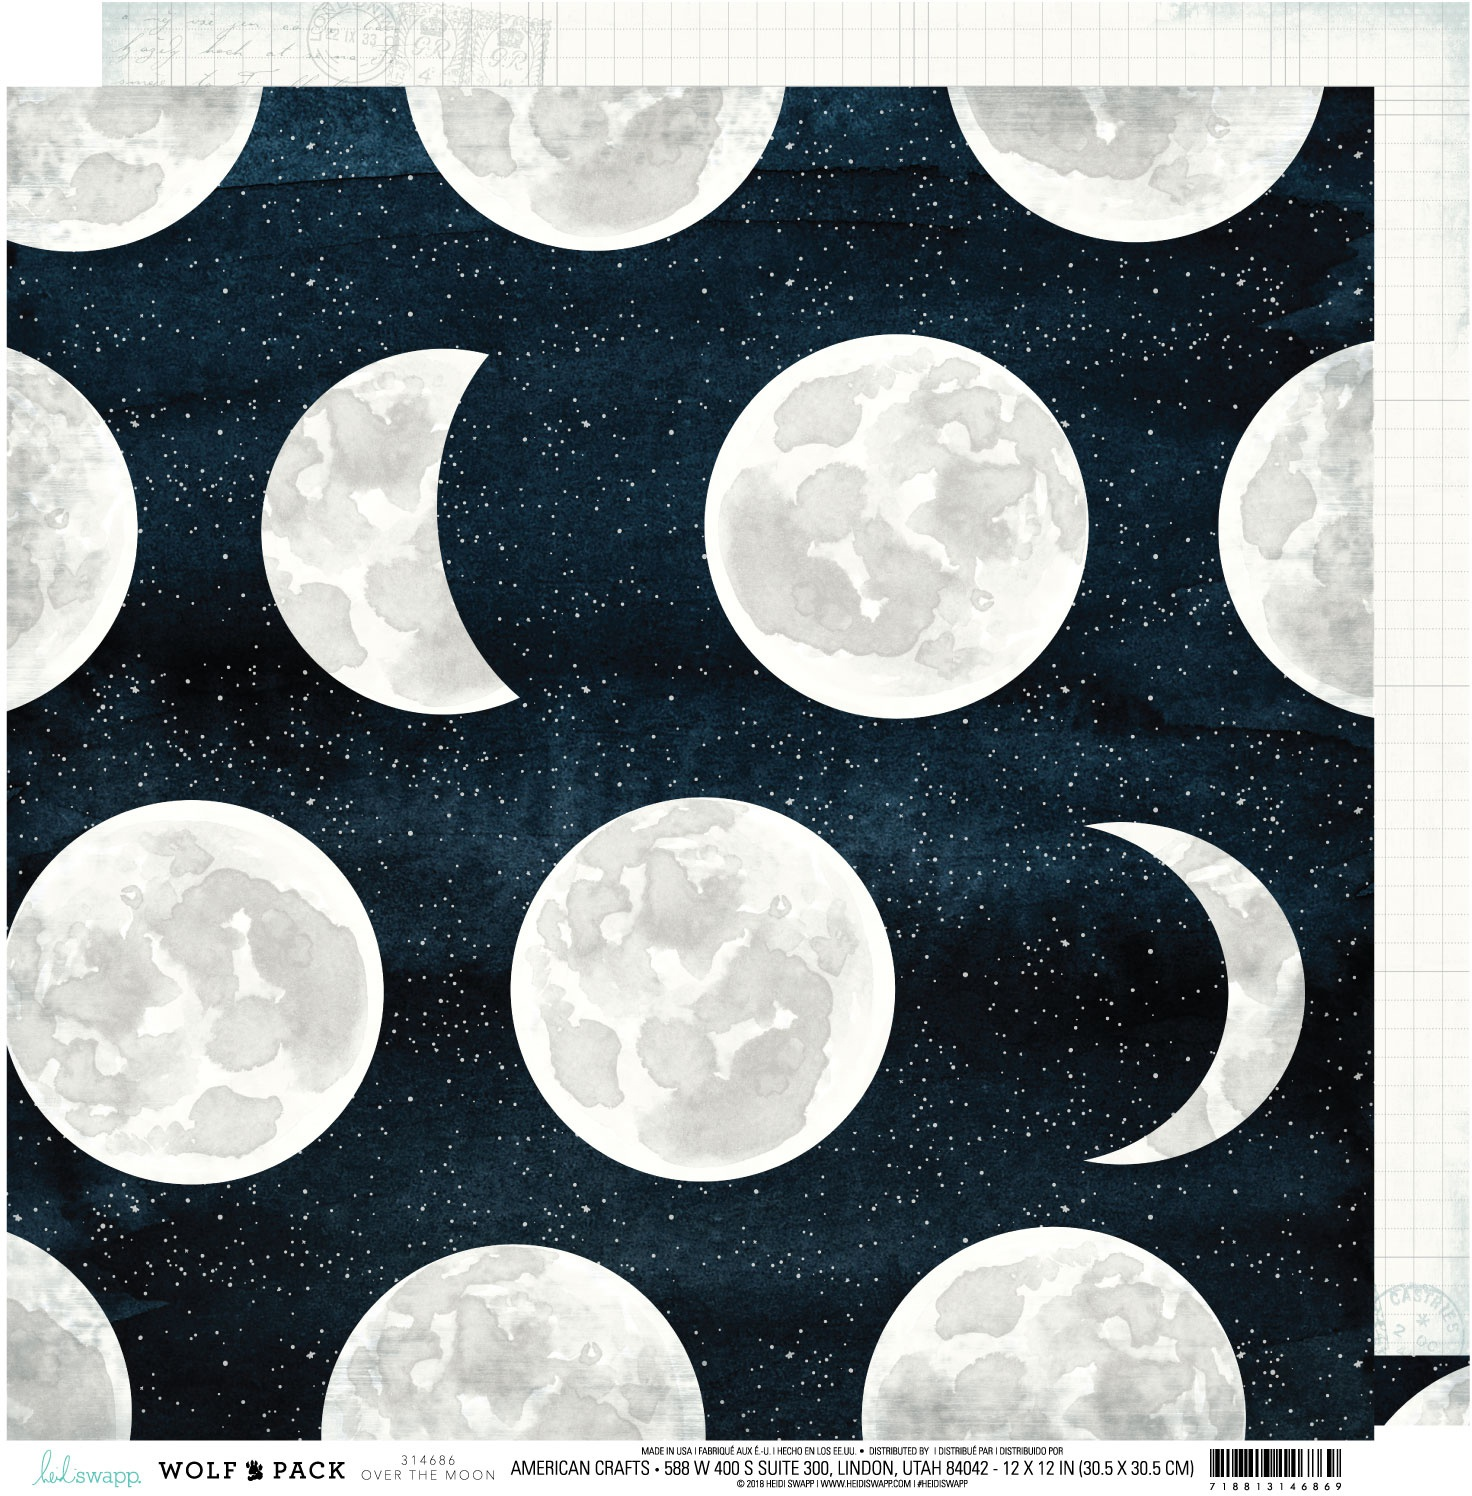 Heidi Swapp Wolf Pack - Over the Moon